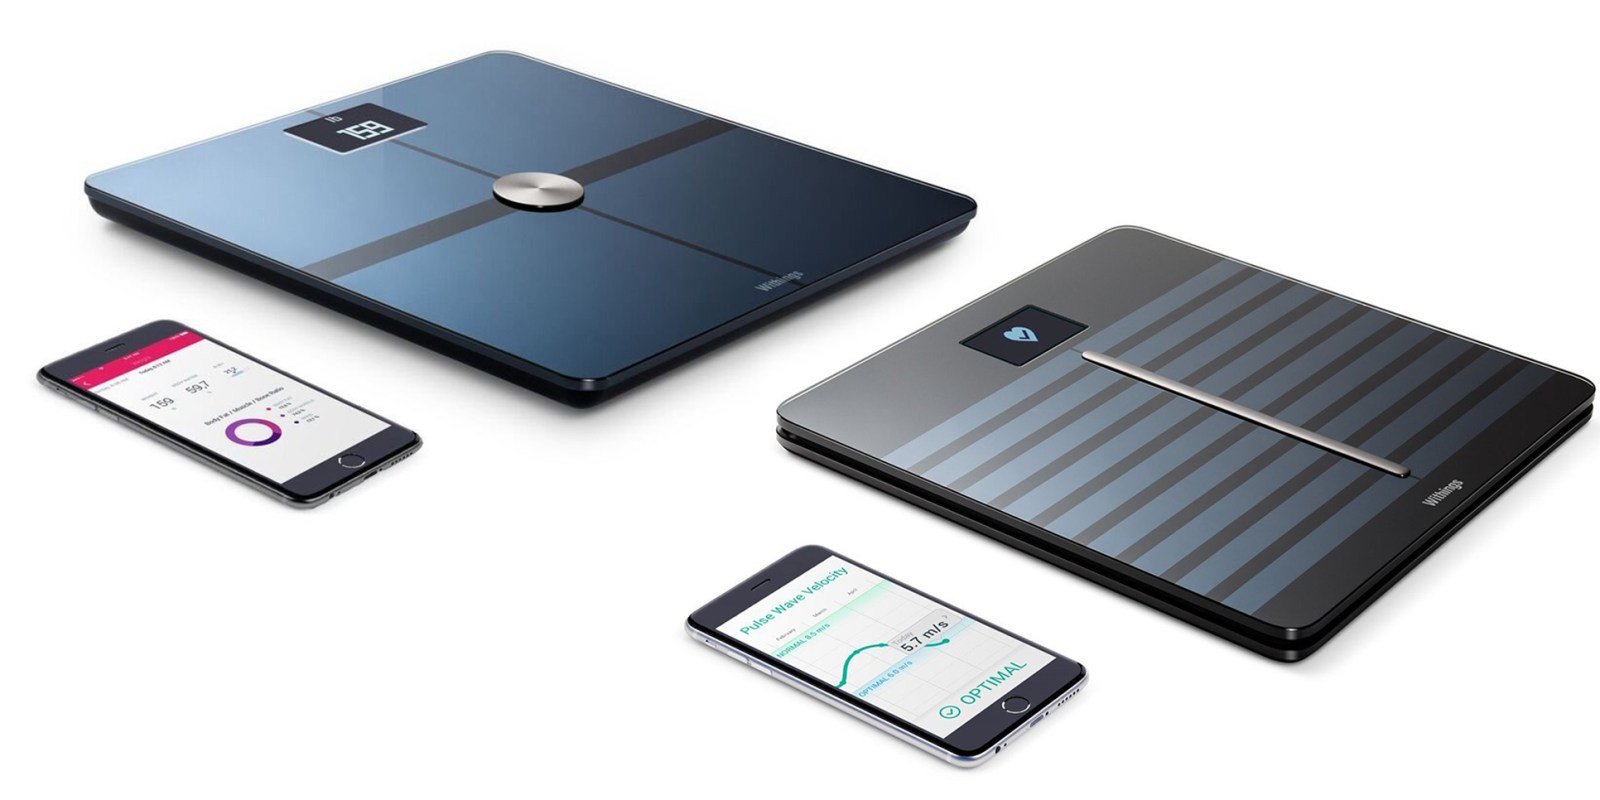 Start 2017 with a best-selling Withings Wi-Fi Body Composition Scale from $78 shipped at Amazon